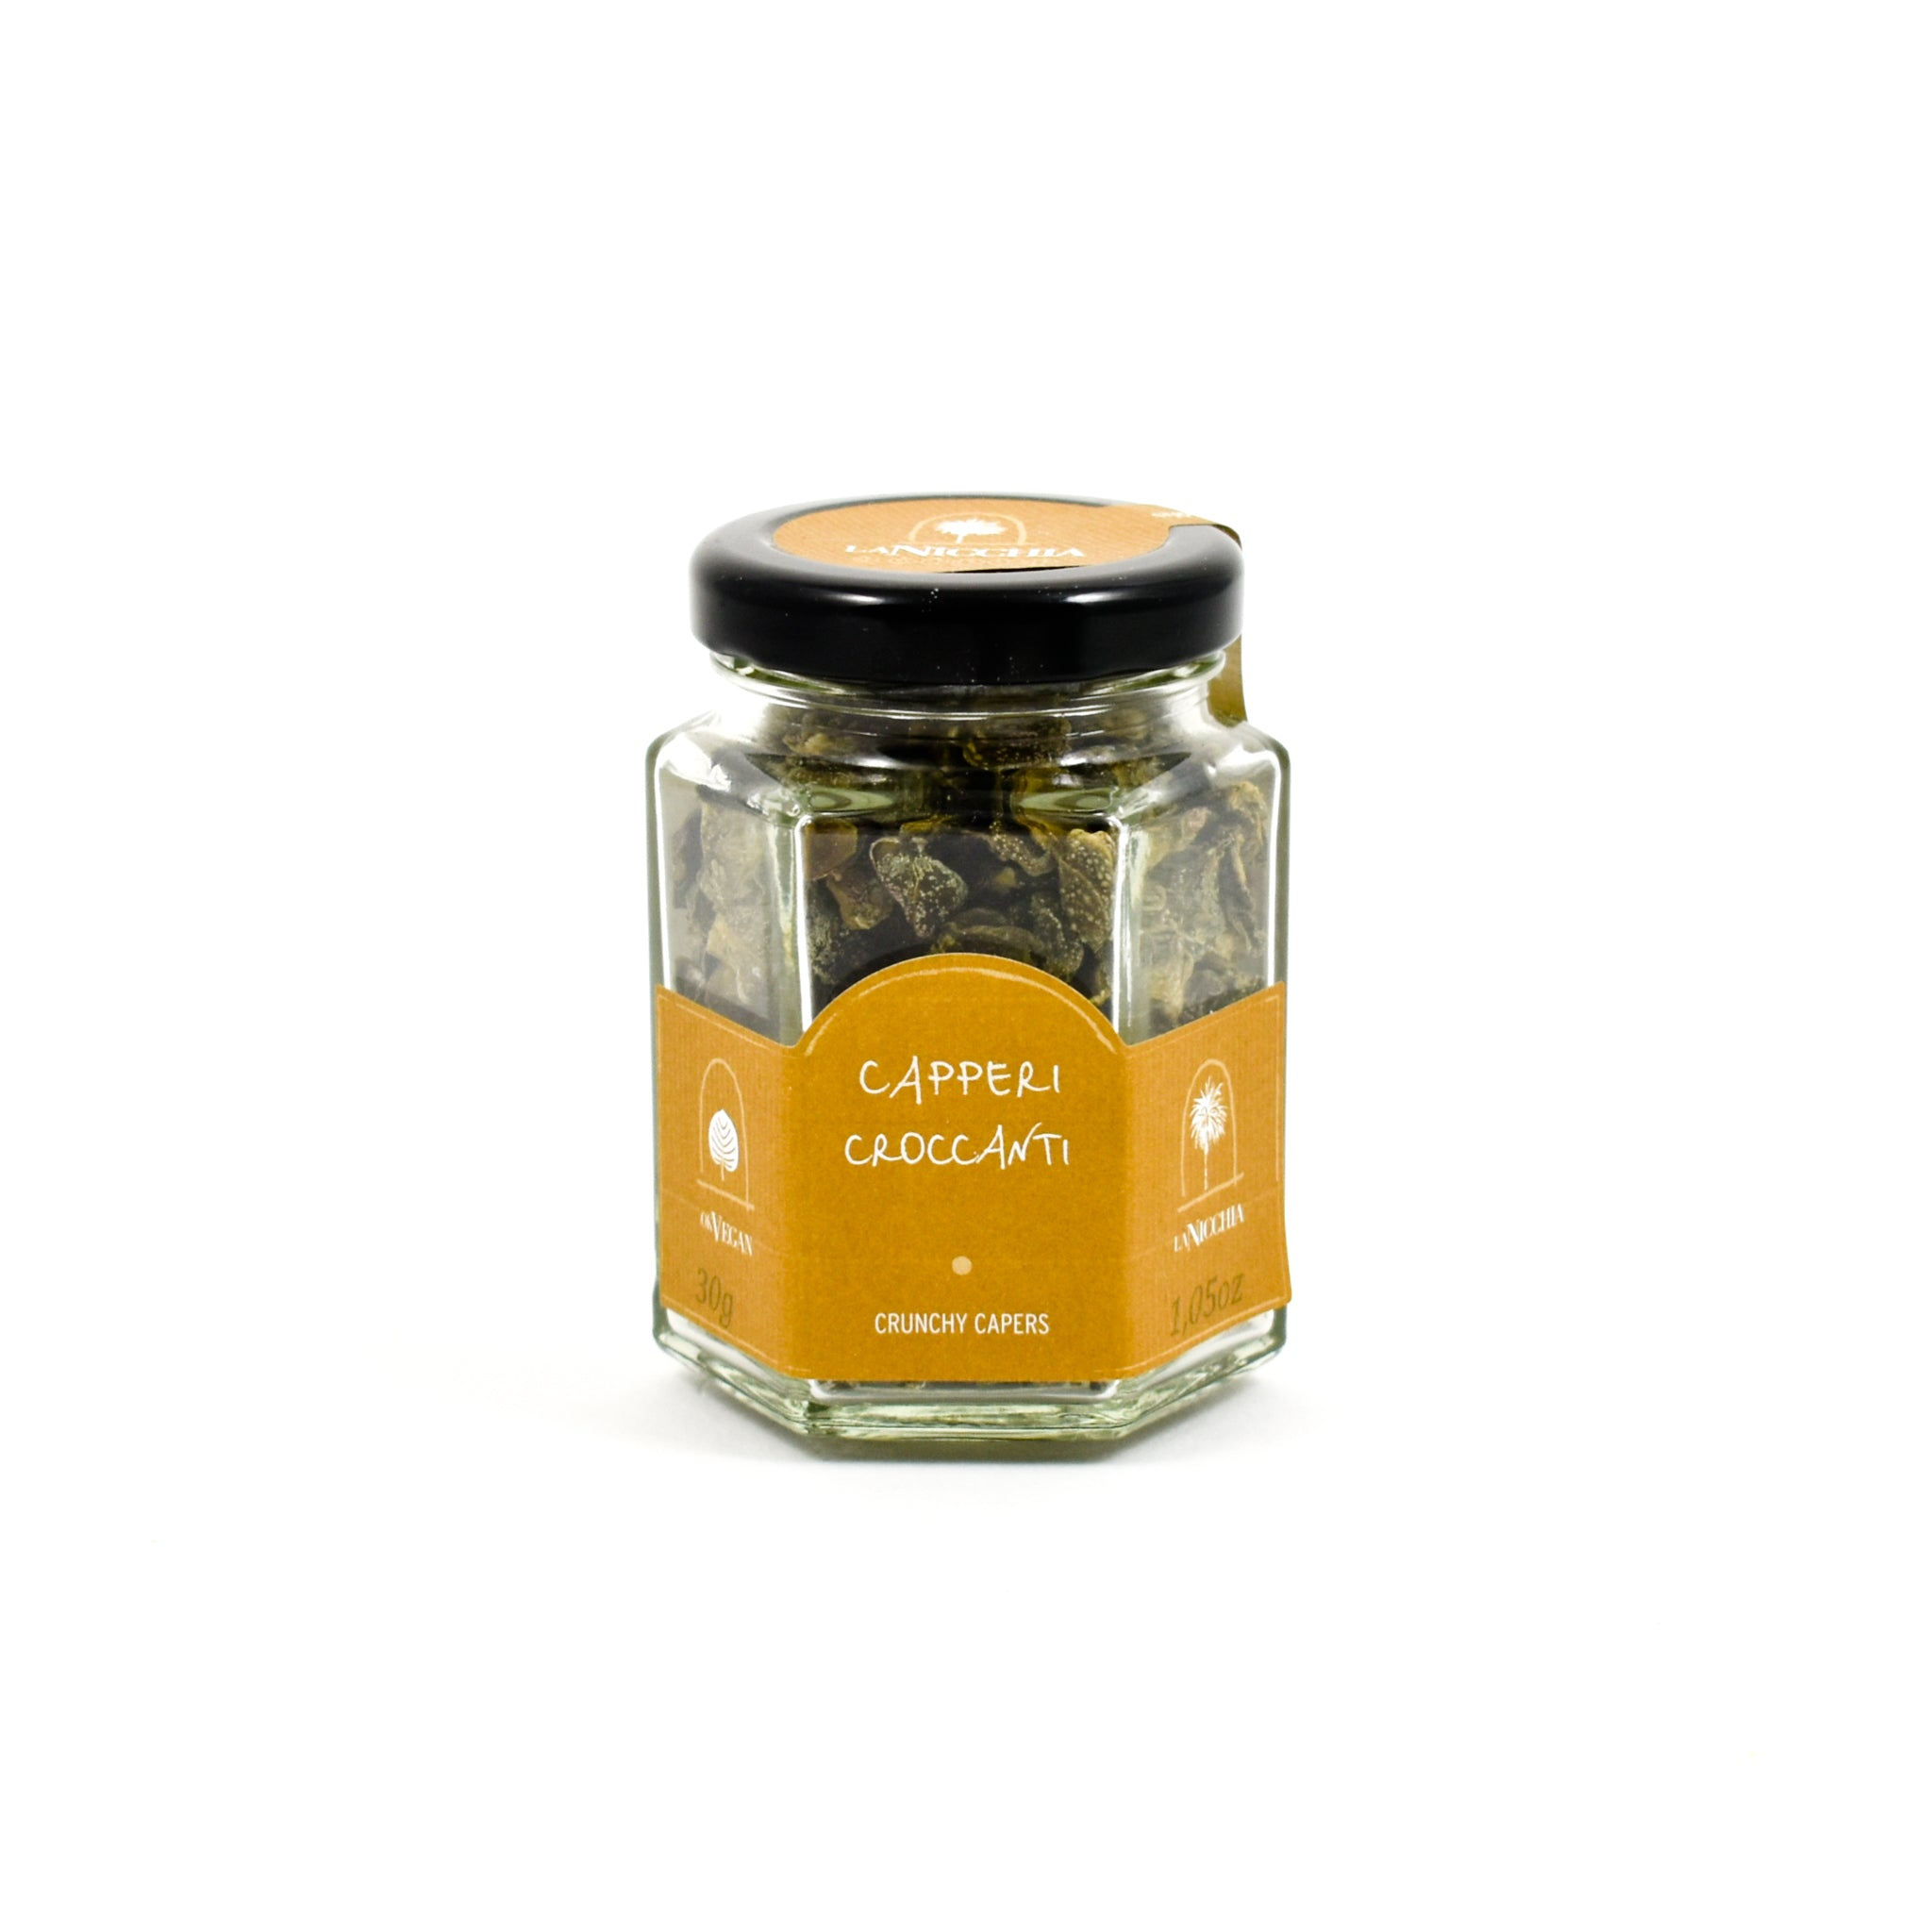 La Nicchia Crunchy Capers 30g Ingredients Pickled & Preserved Vegetables Italian Food